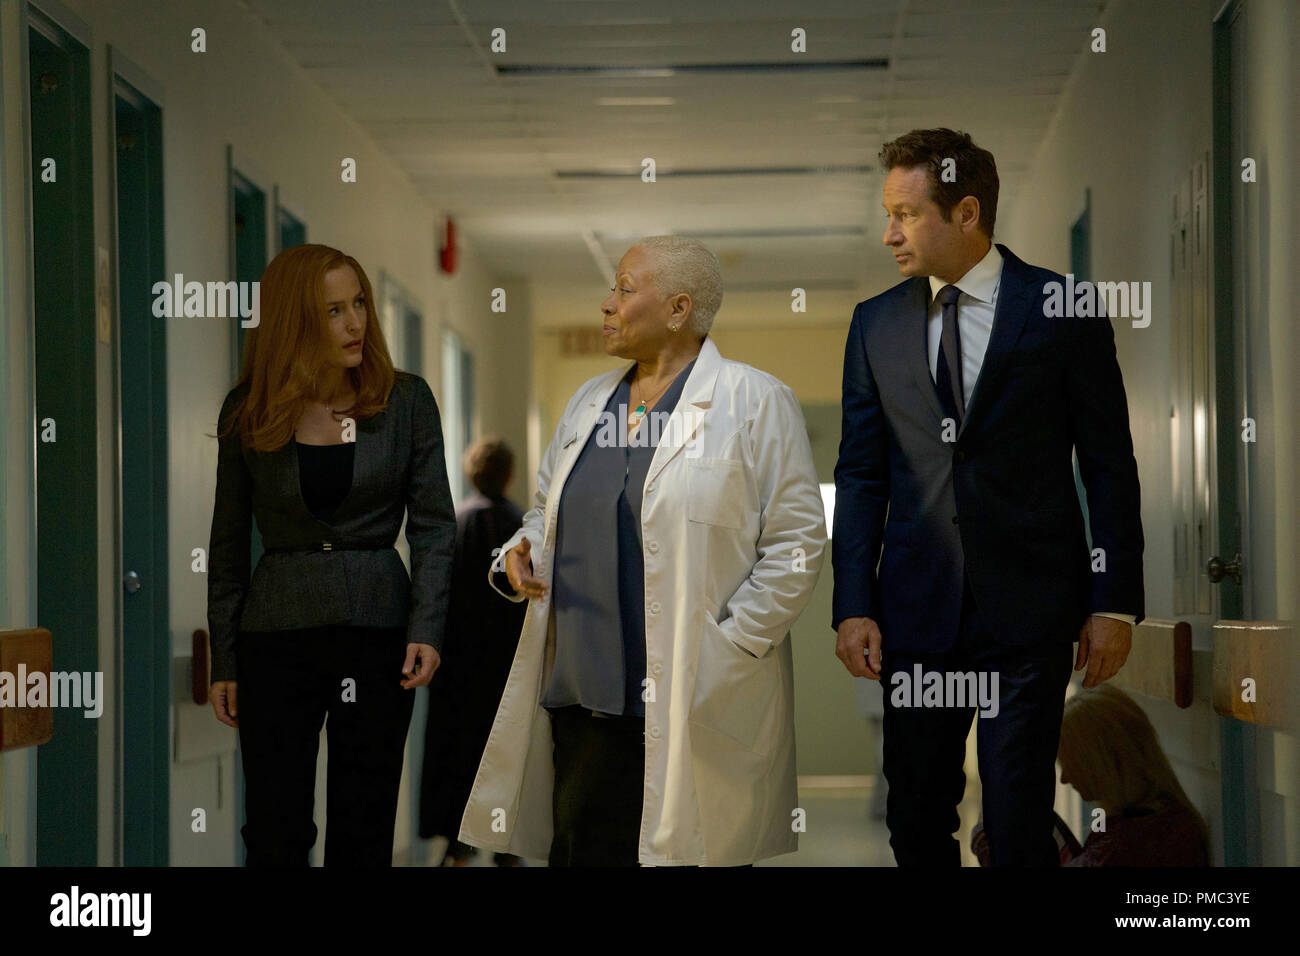 THE X-FILES:  L-R:  Gillian Anderson, guest star Denise Dowse and David Duchovny in the 'Plus One' episode of THE X-FILES on Fox. © 2018 Fox Broadcasting Co. Cr:  Shane Harvey/Fox - Stock Image